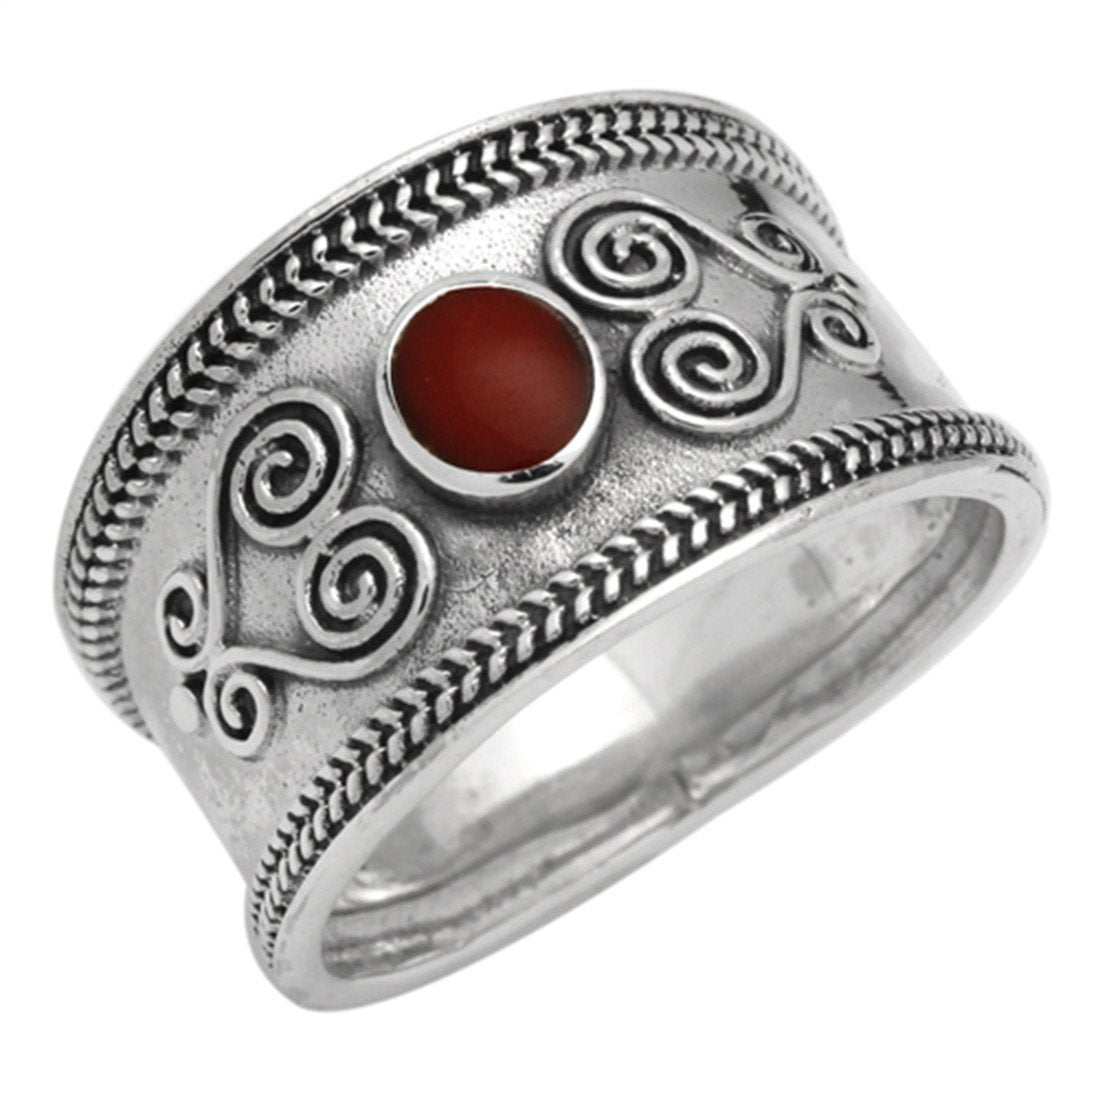 Filigree Swirl Bali Ring Simulated Coral Stone CZ 925 Sterling Silver